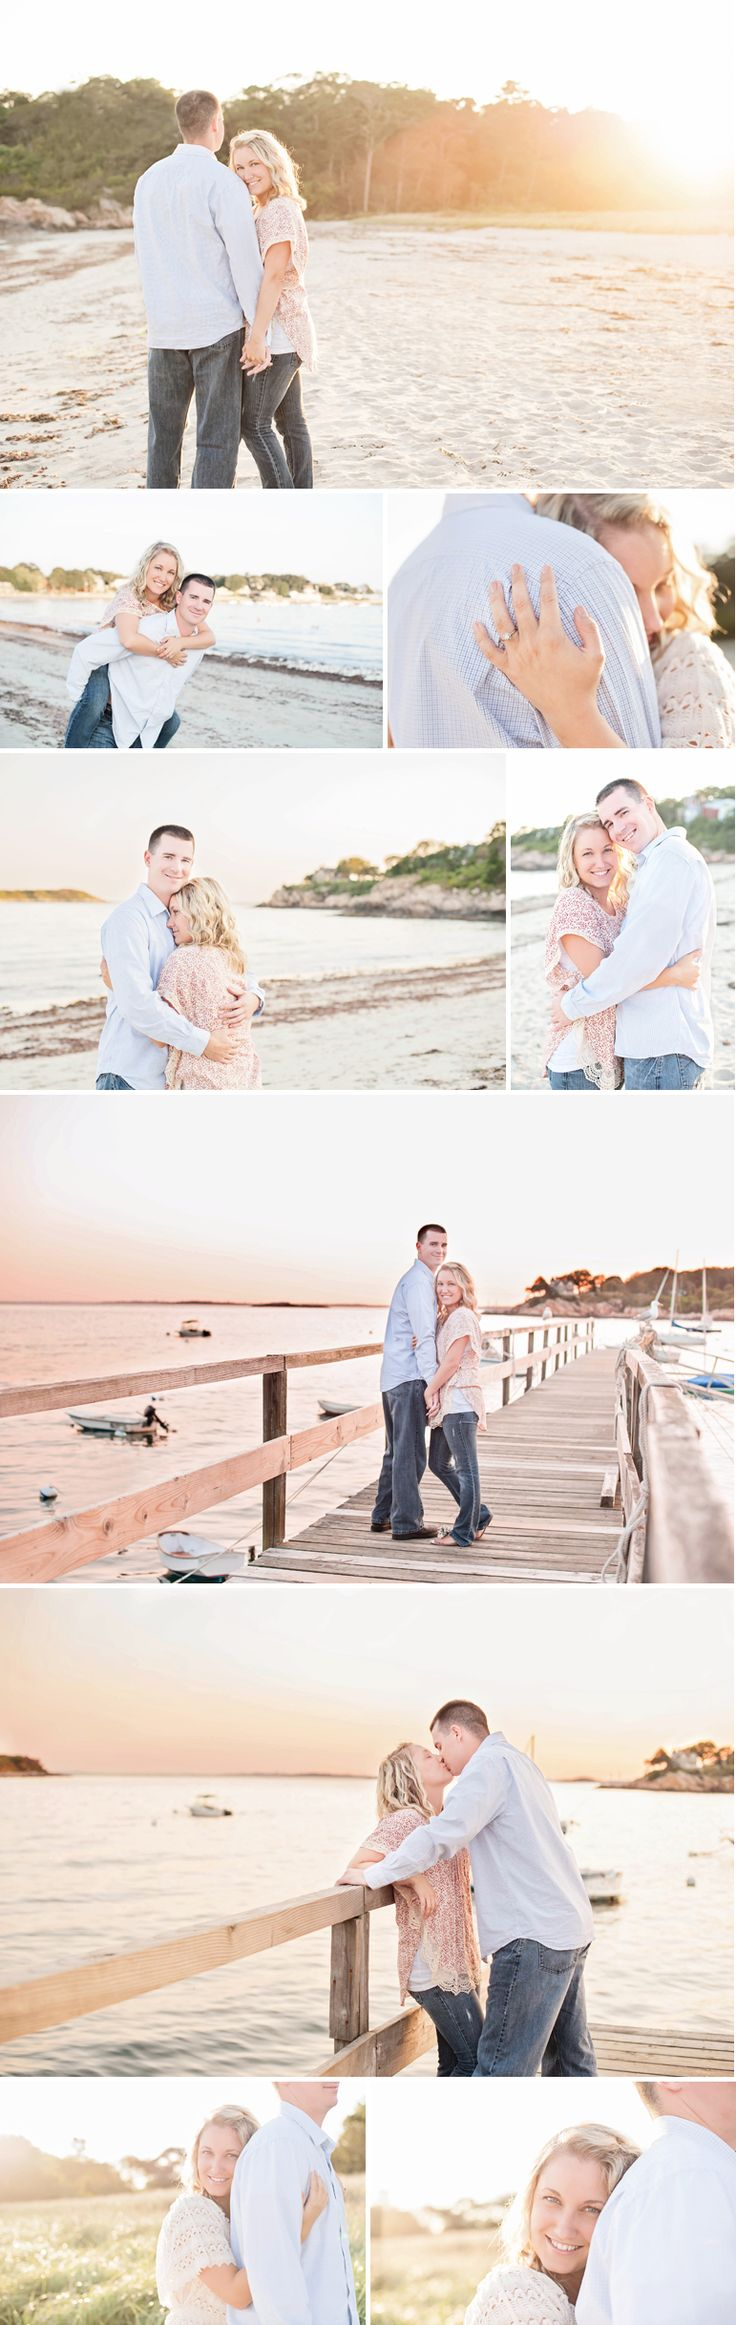 Engagement pictures at the beach - photography